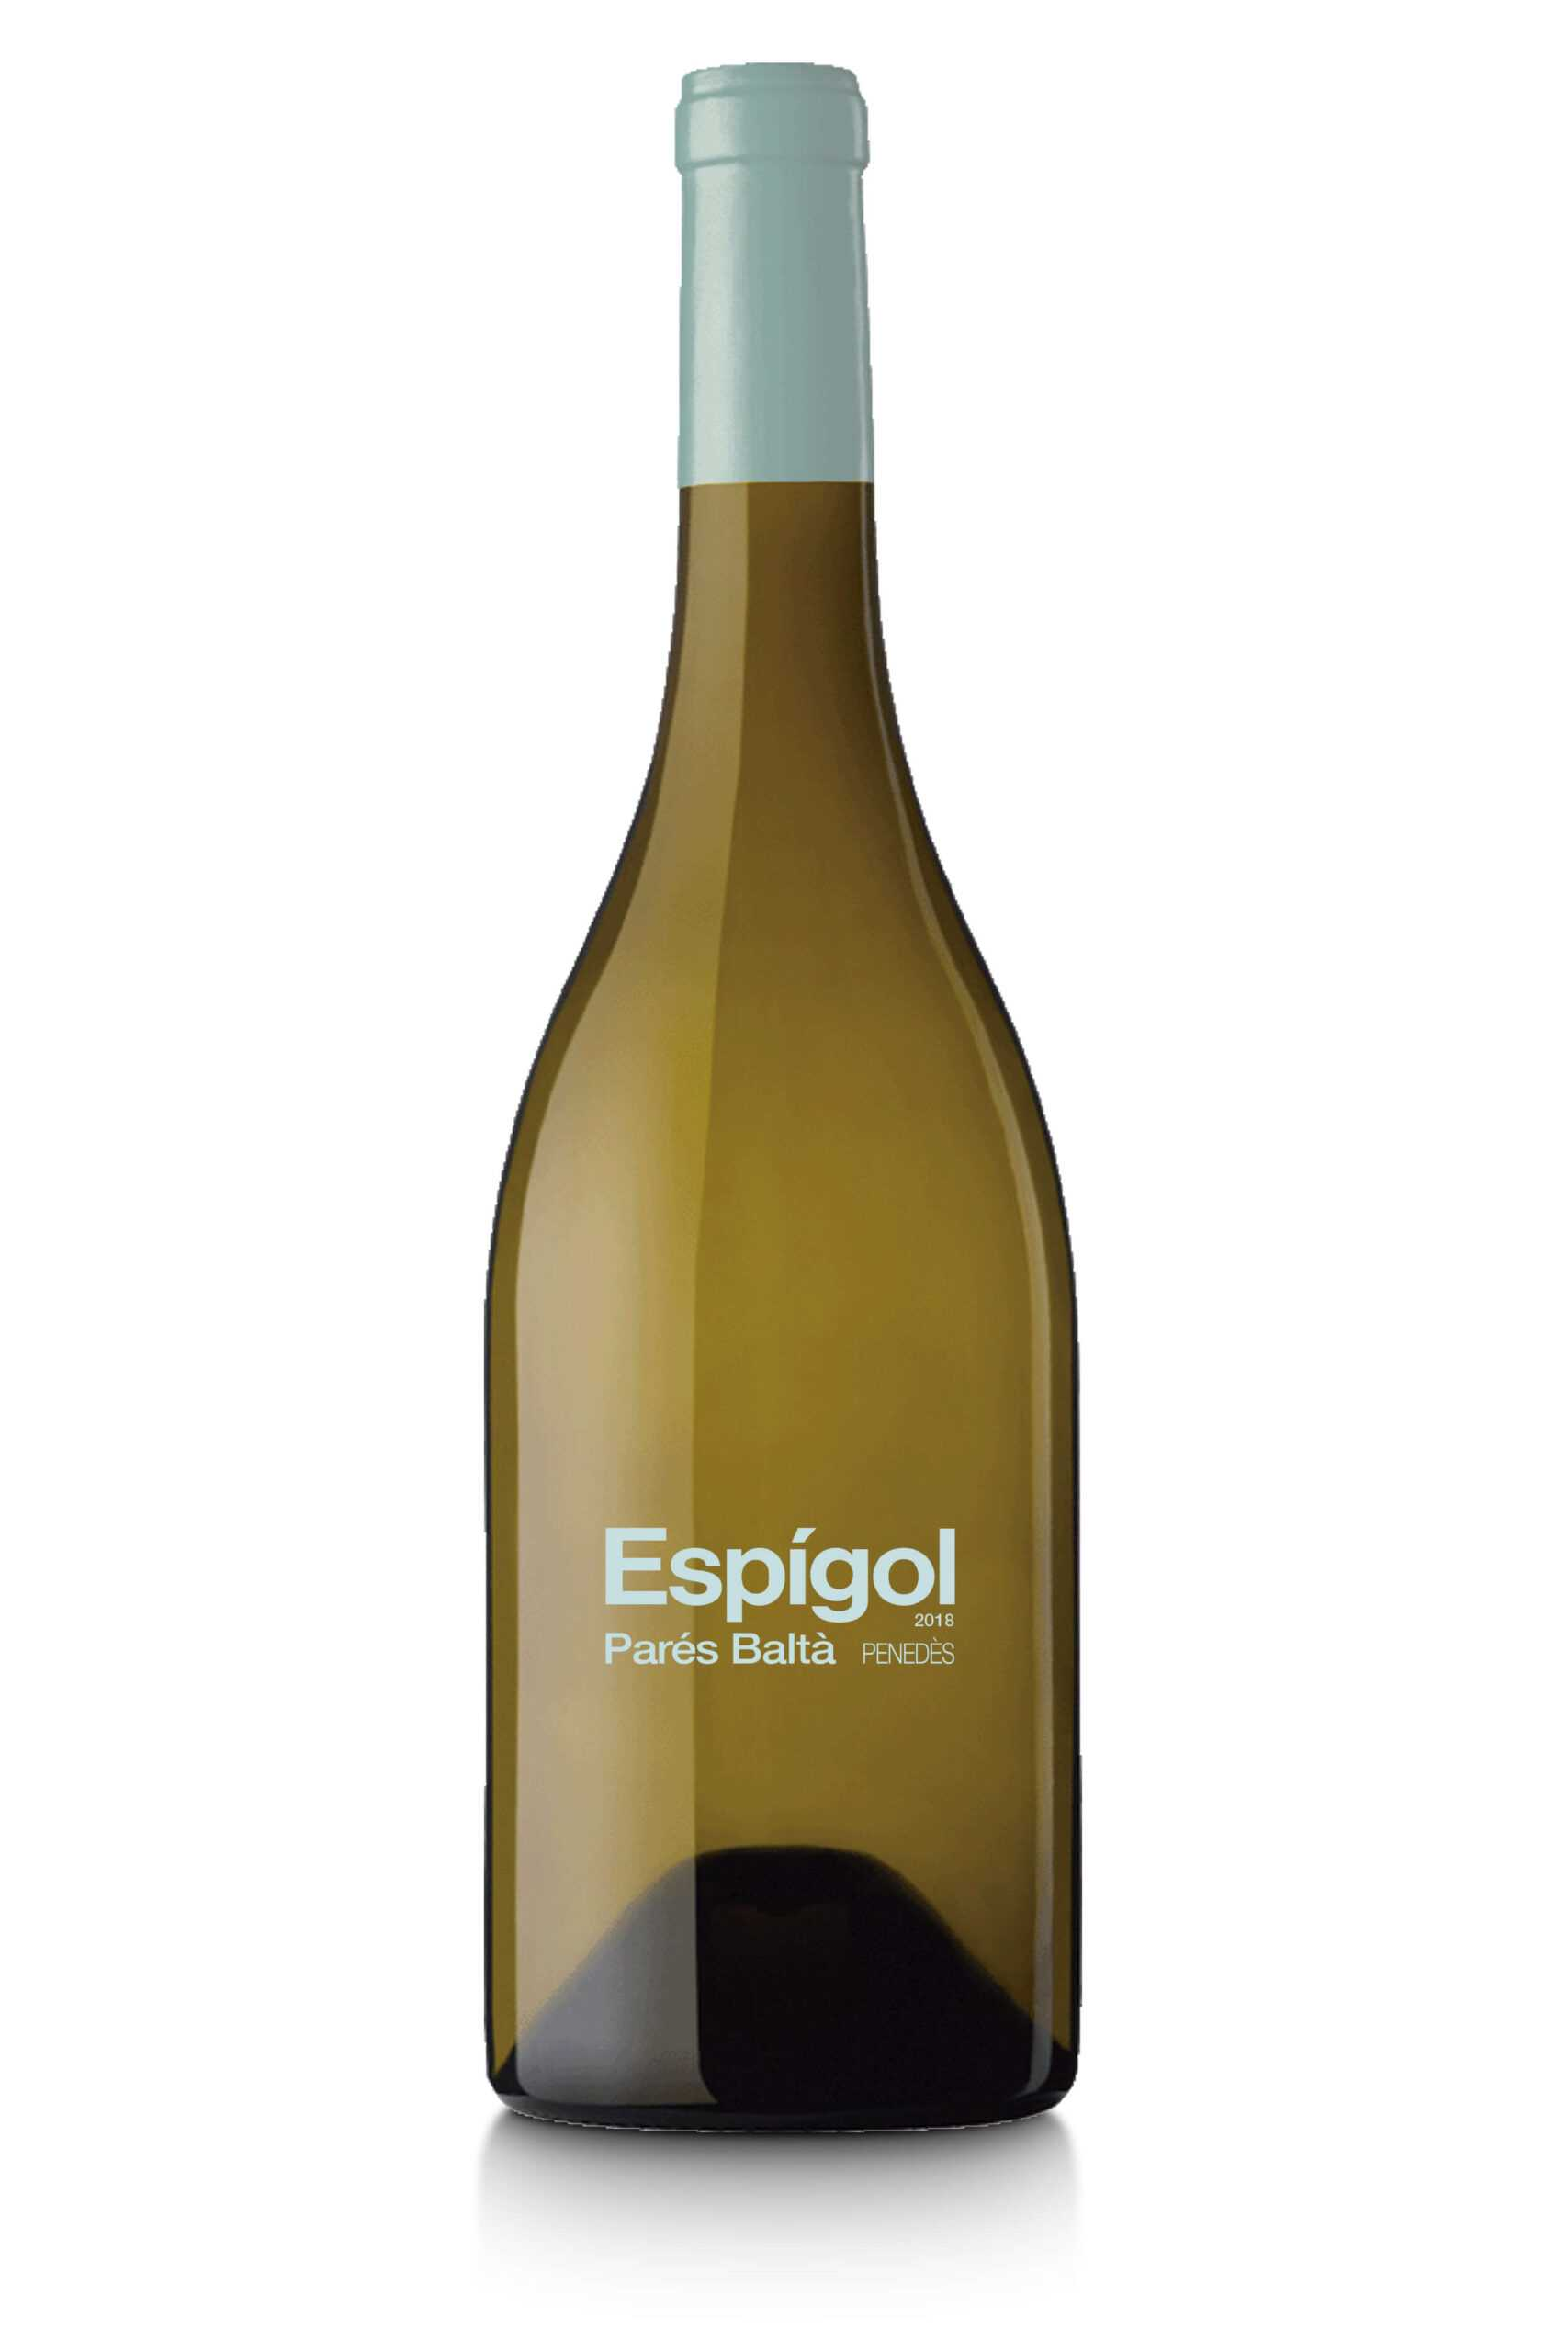 Espígol 2019 vino espigol pares balta scaled